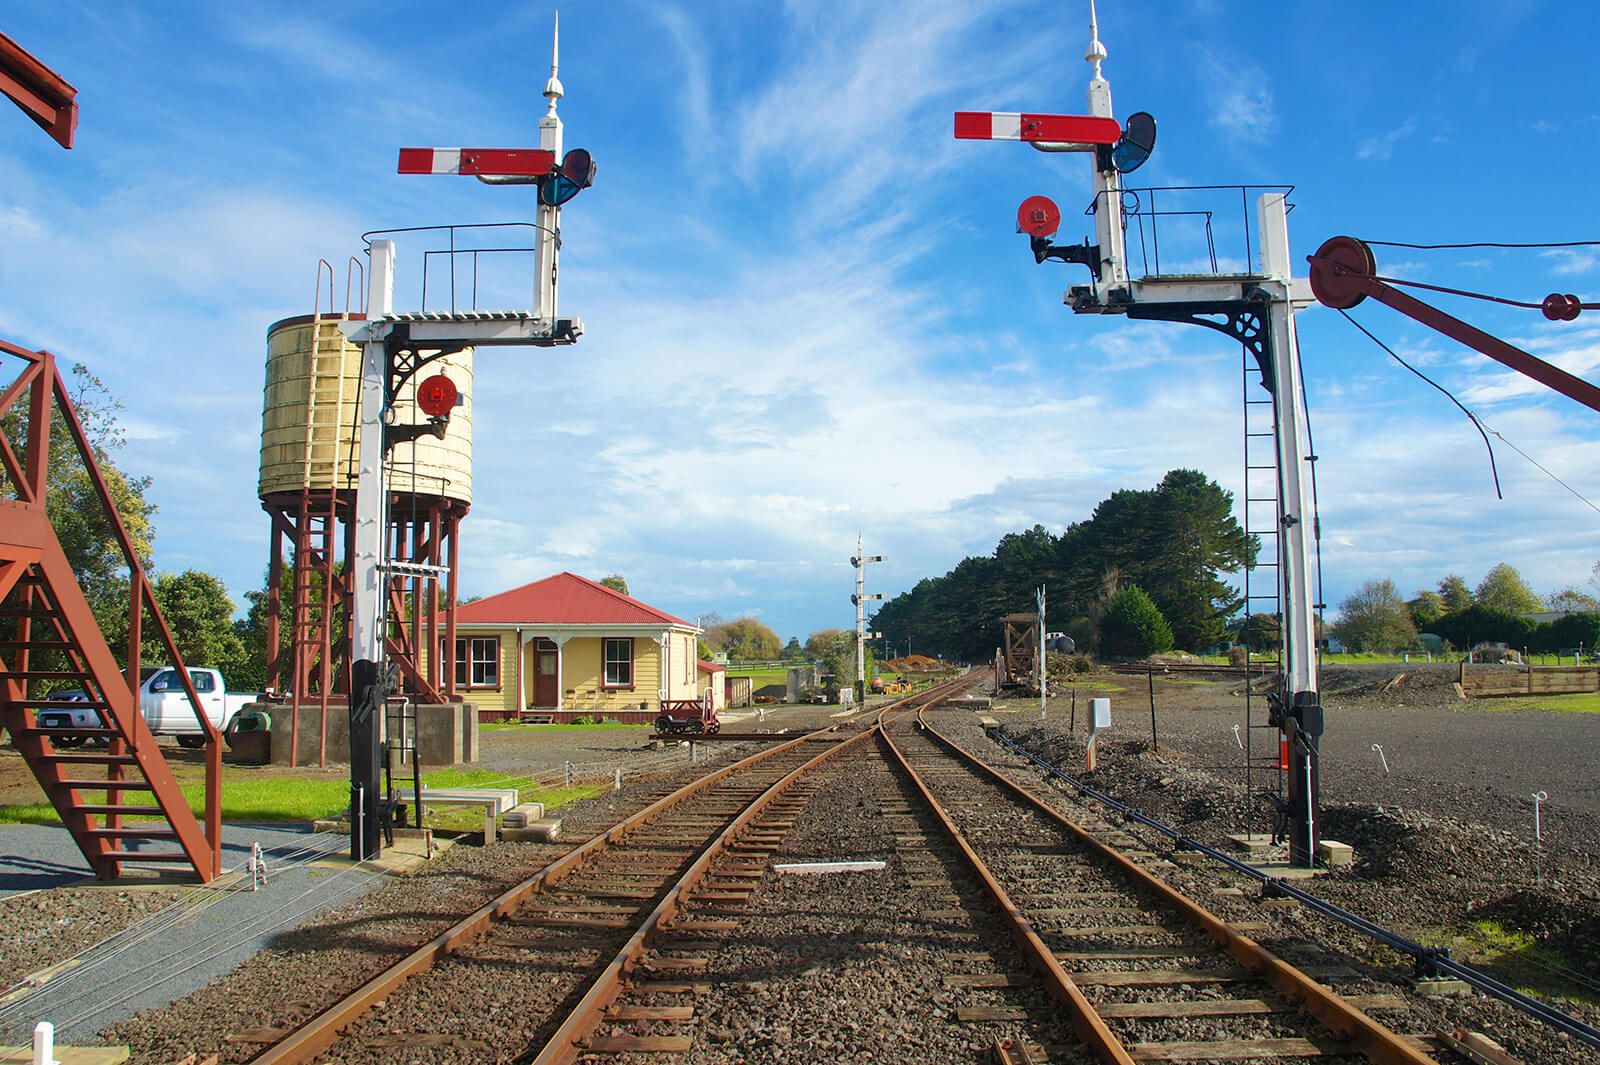 Glenbrook Vintage Railway, one of the unique and offbeat Auckland activities